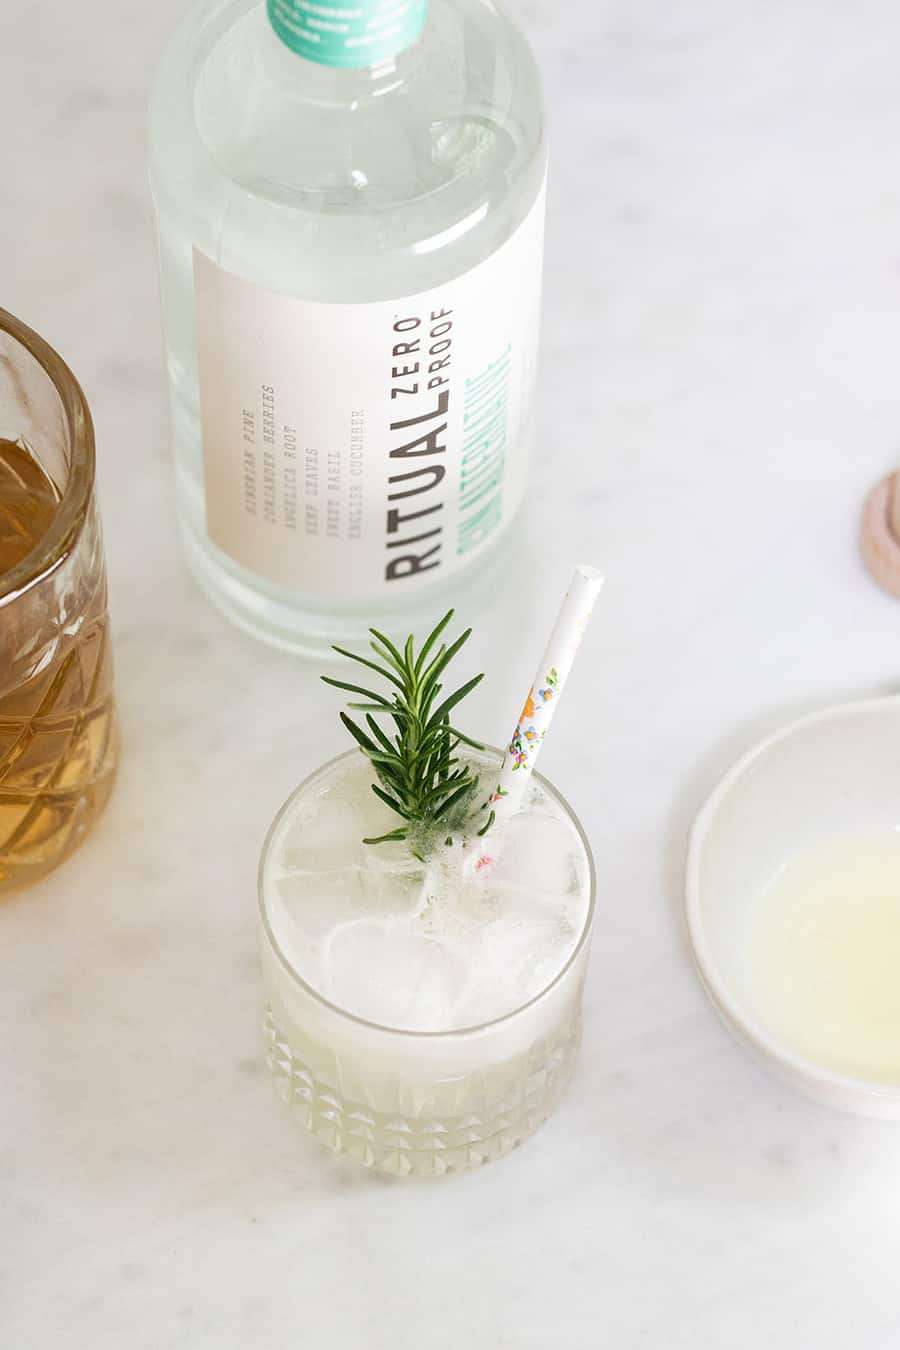 mocktail with rosemary, zero proof spirit and simple syrup.